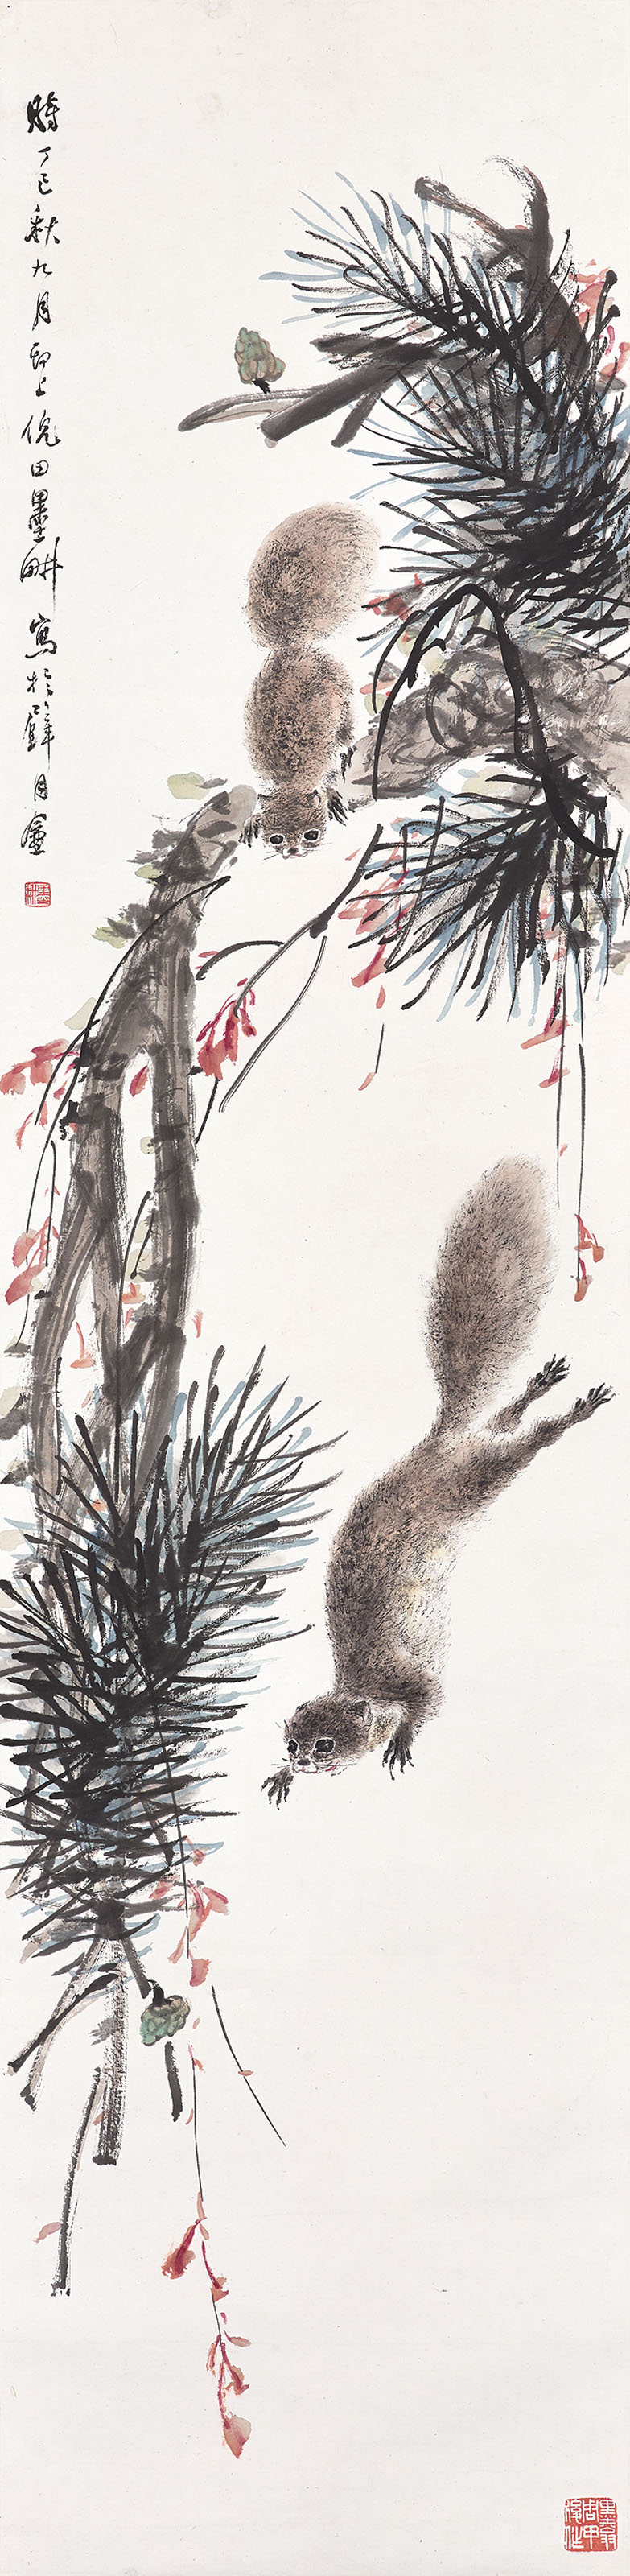 Pine and Squirrels